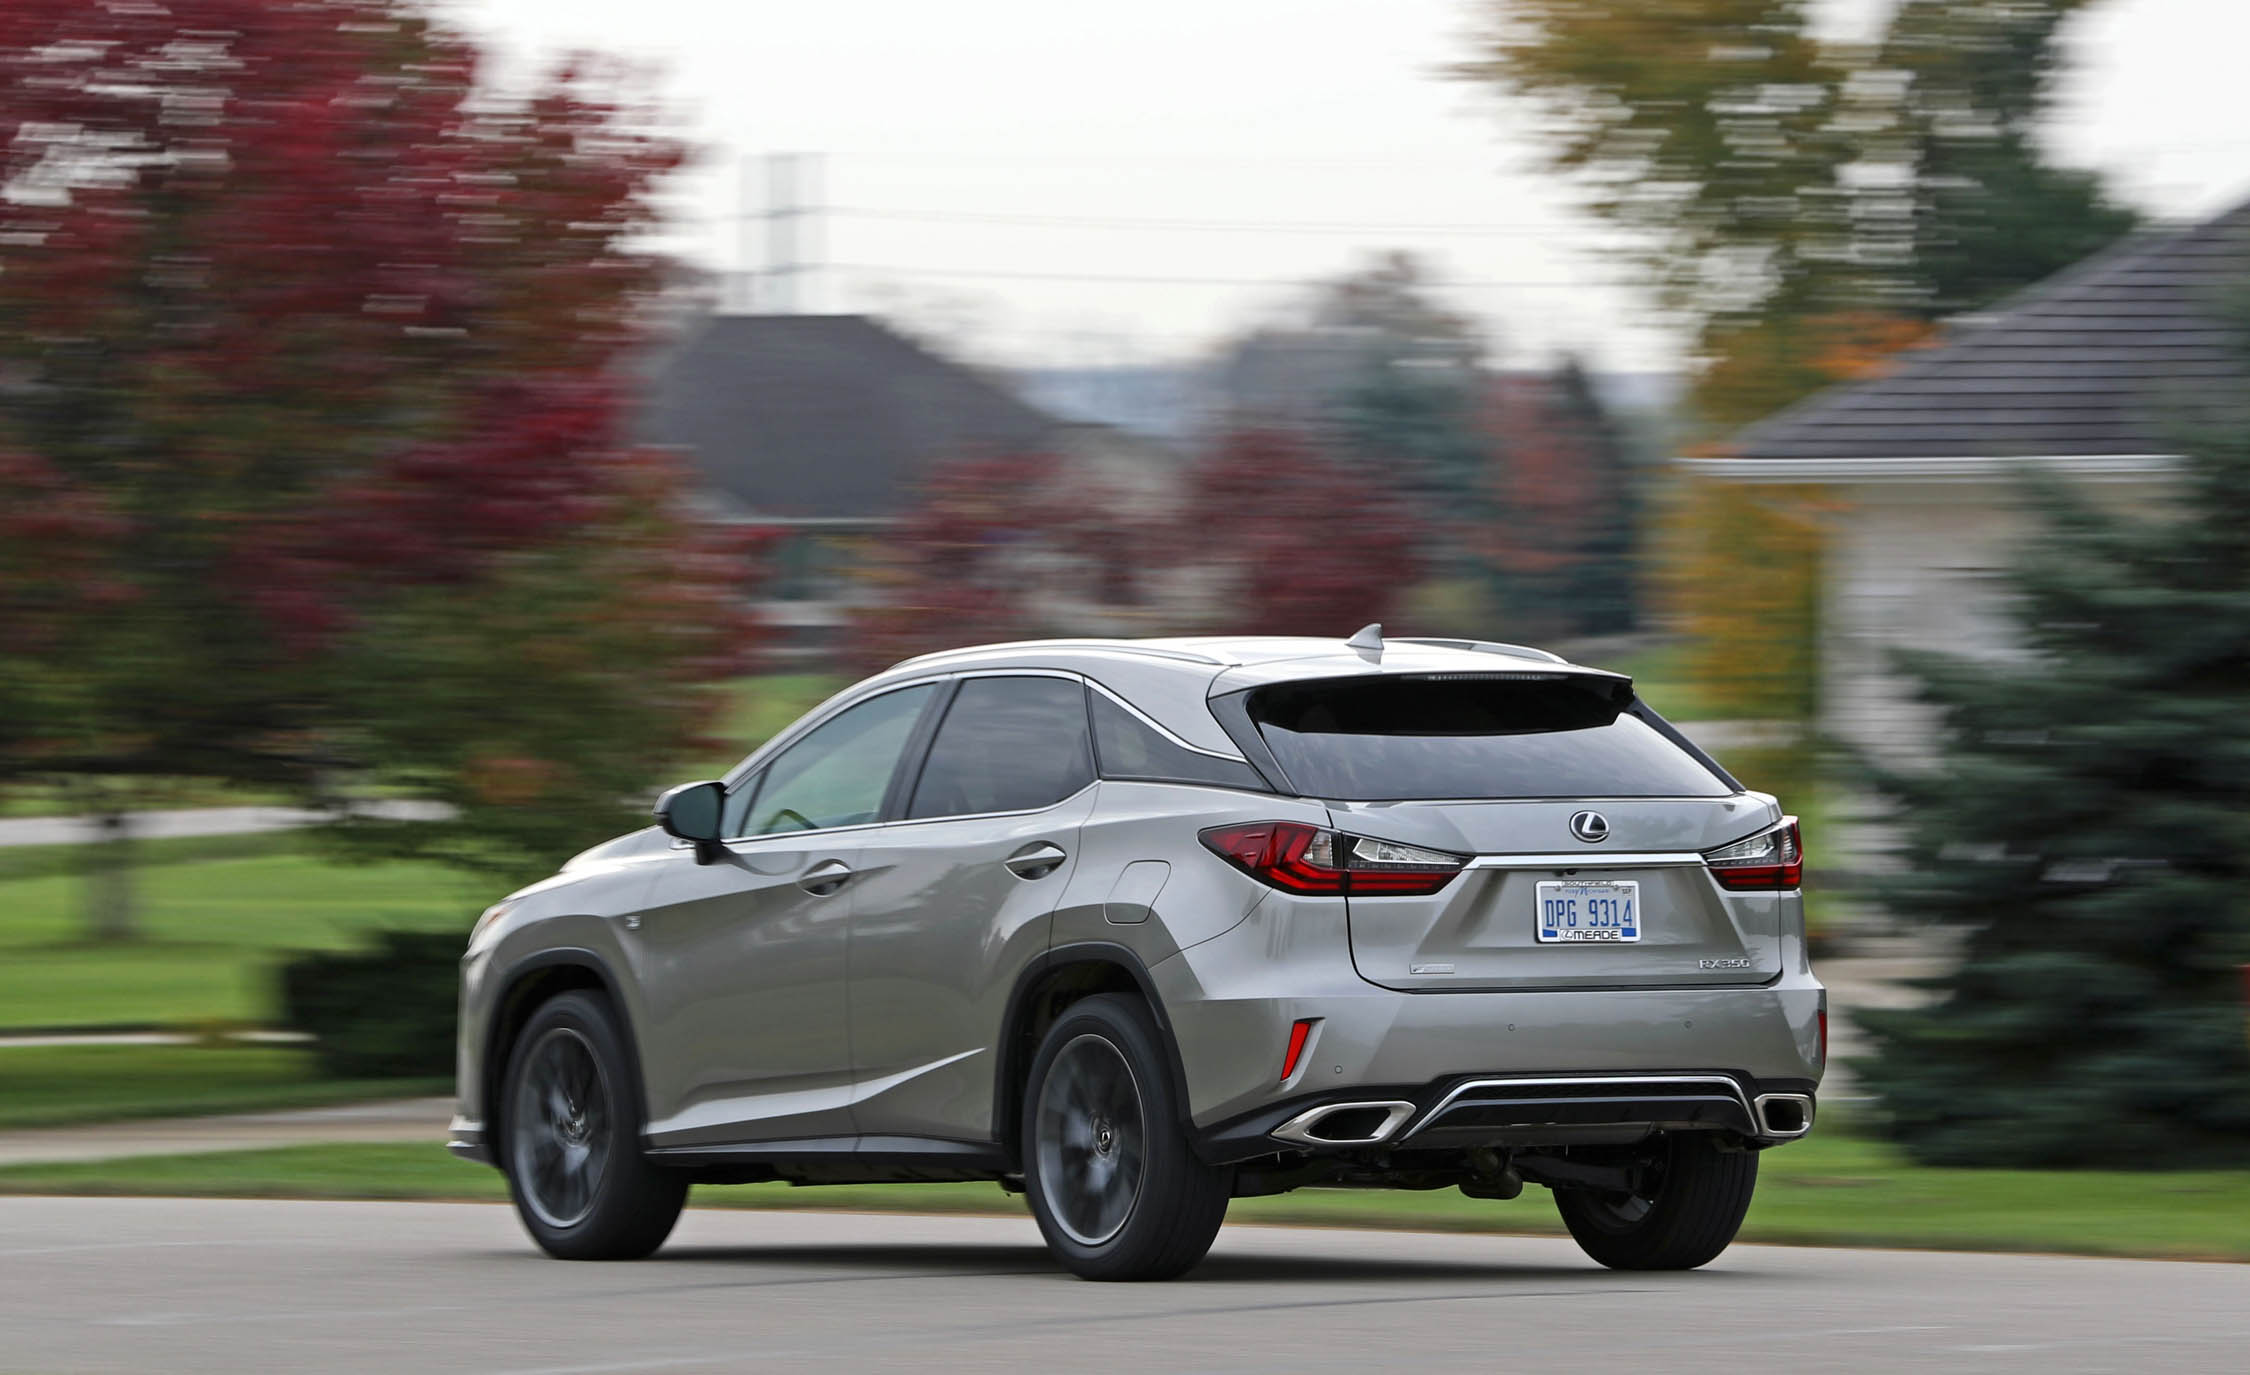 2017 Lexus RX350 F Sport (View 26 of 35)